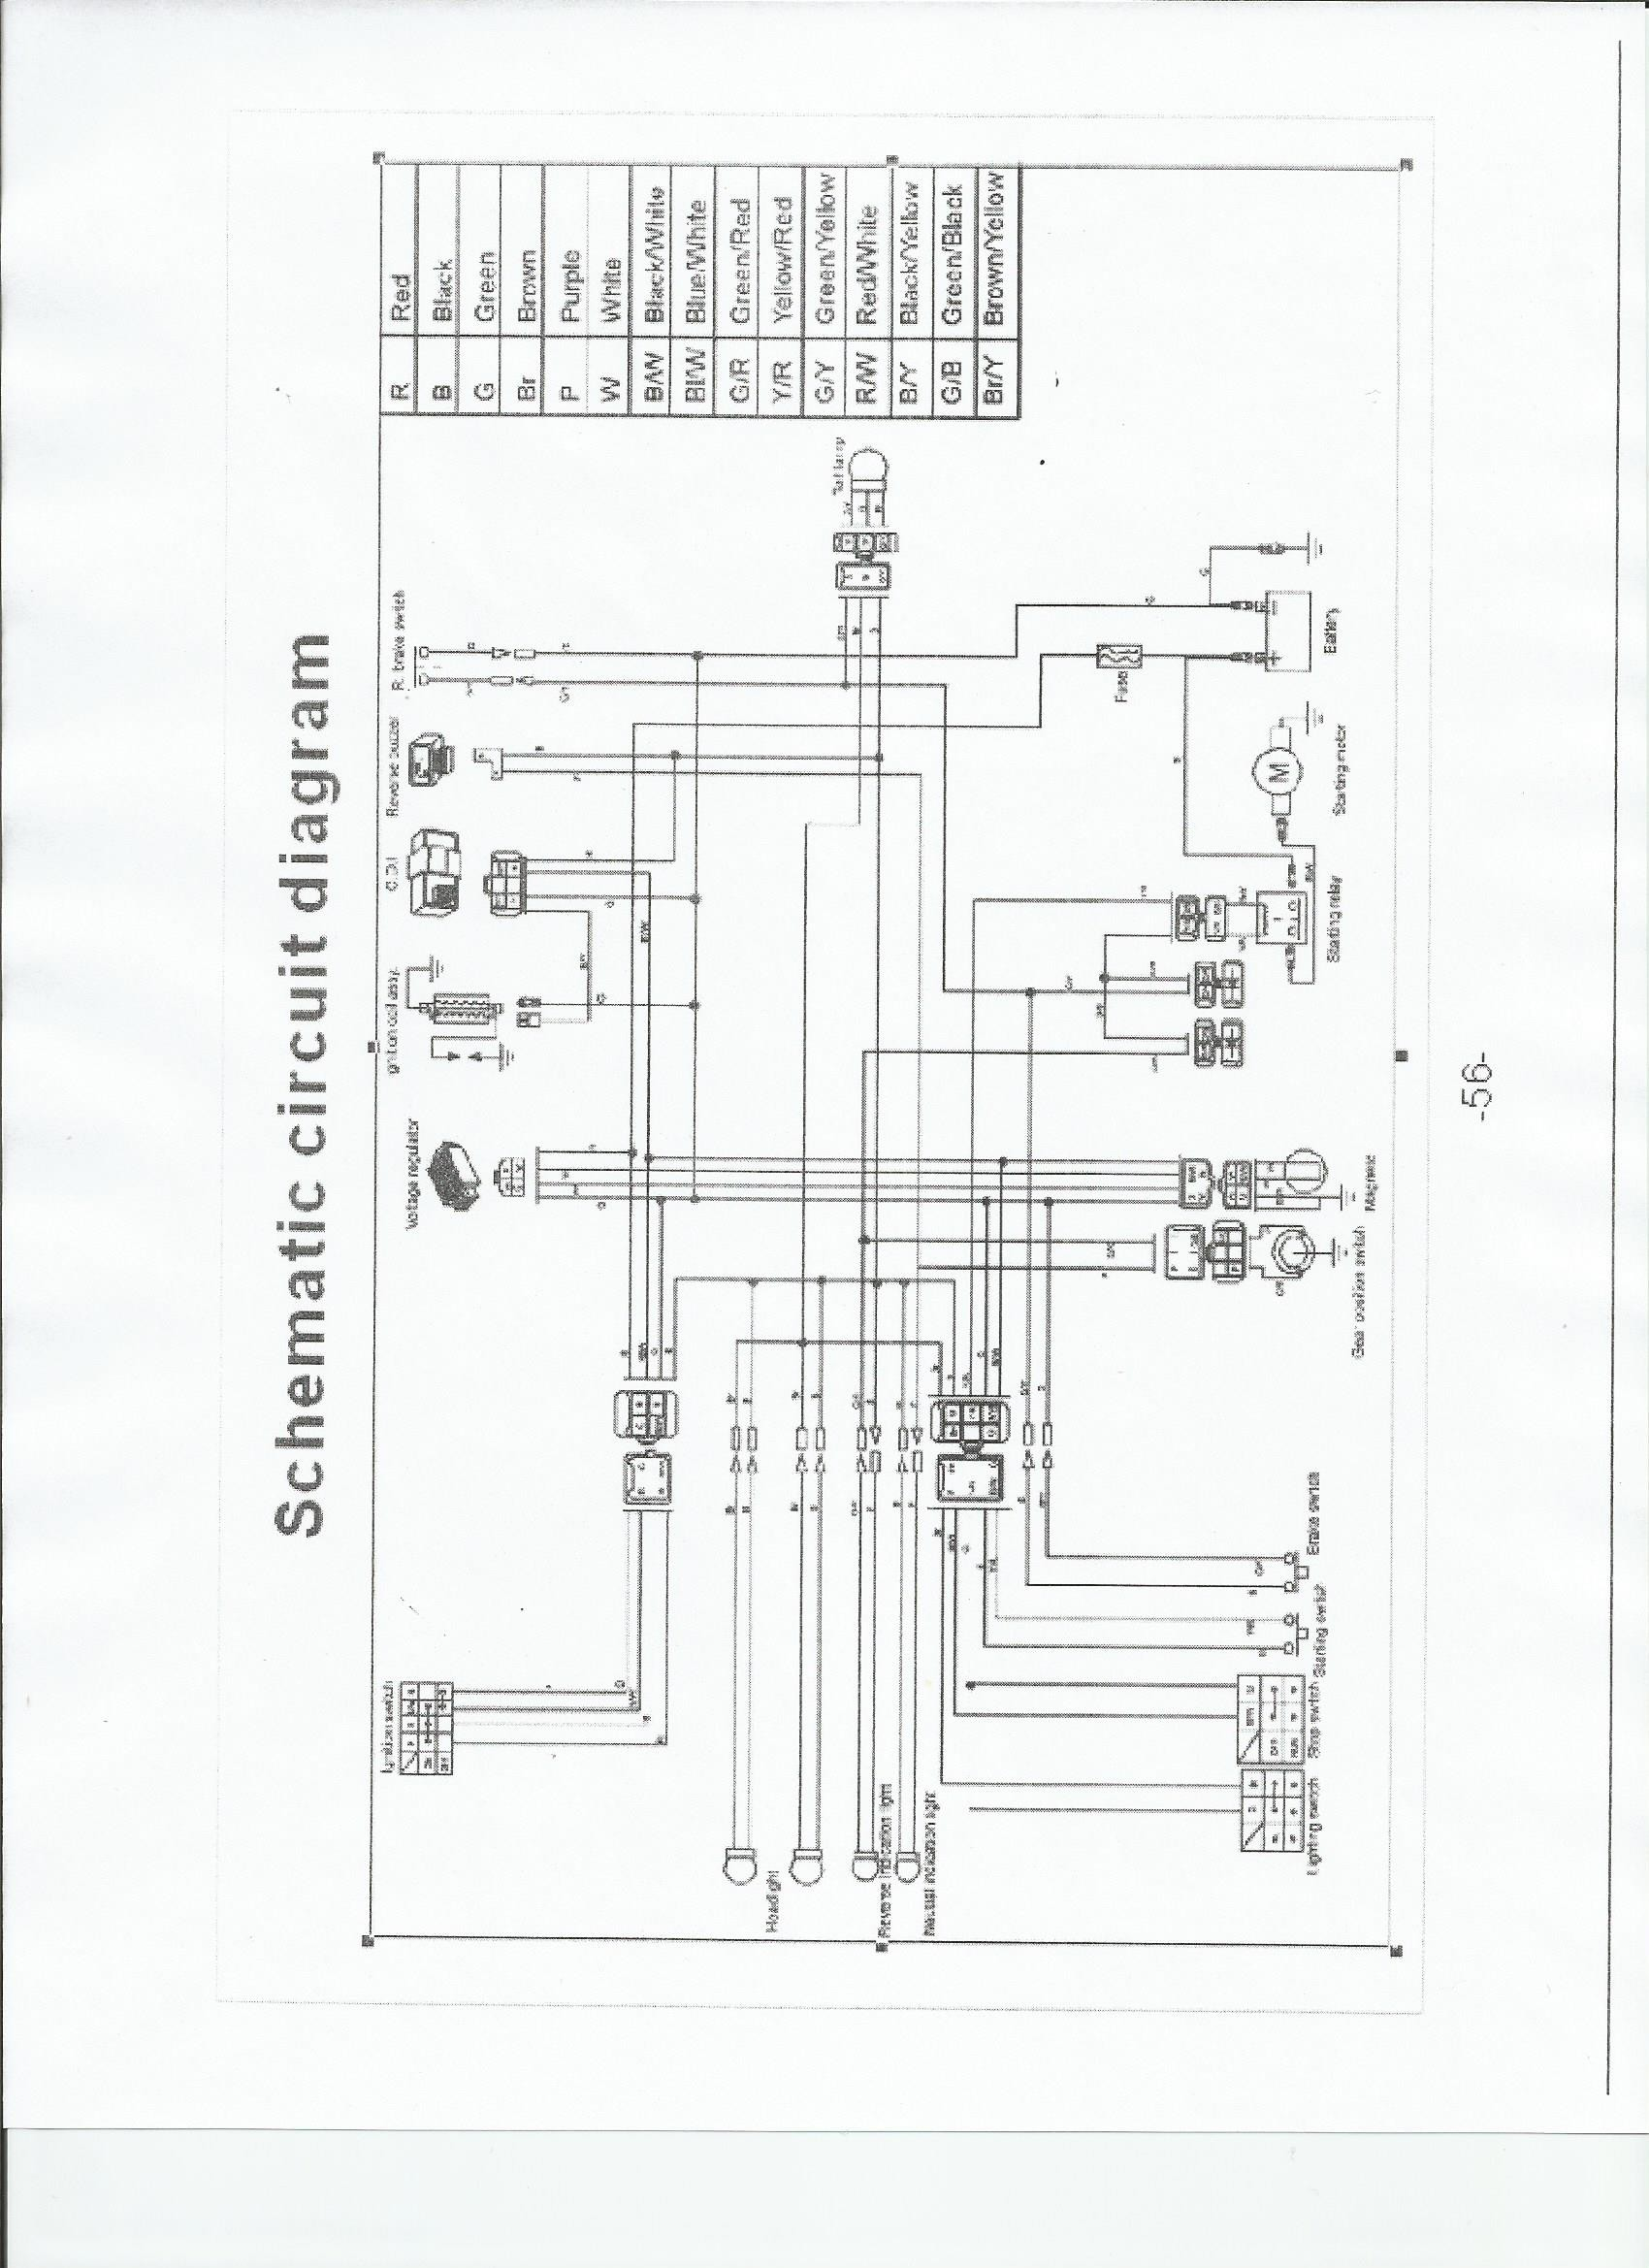 [SCHEMATICS_4ER]  250cc Atv Wiring Diagram Diagram Base Website Wiring Diagram -  VENNDIAGRAMPRESENTATION.ATTENTIALLUOMO.IT | Honda 4 Wheeler Wiring Schematic |  | attentialluomo